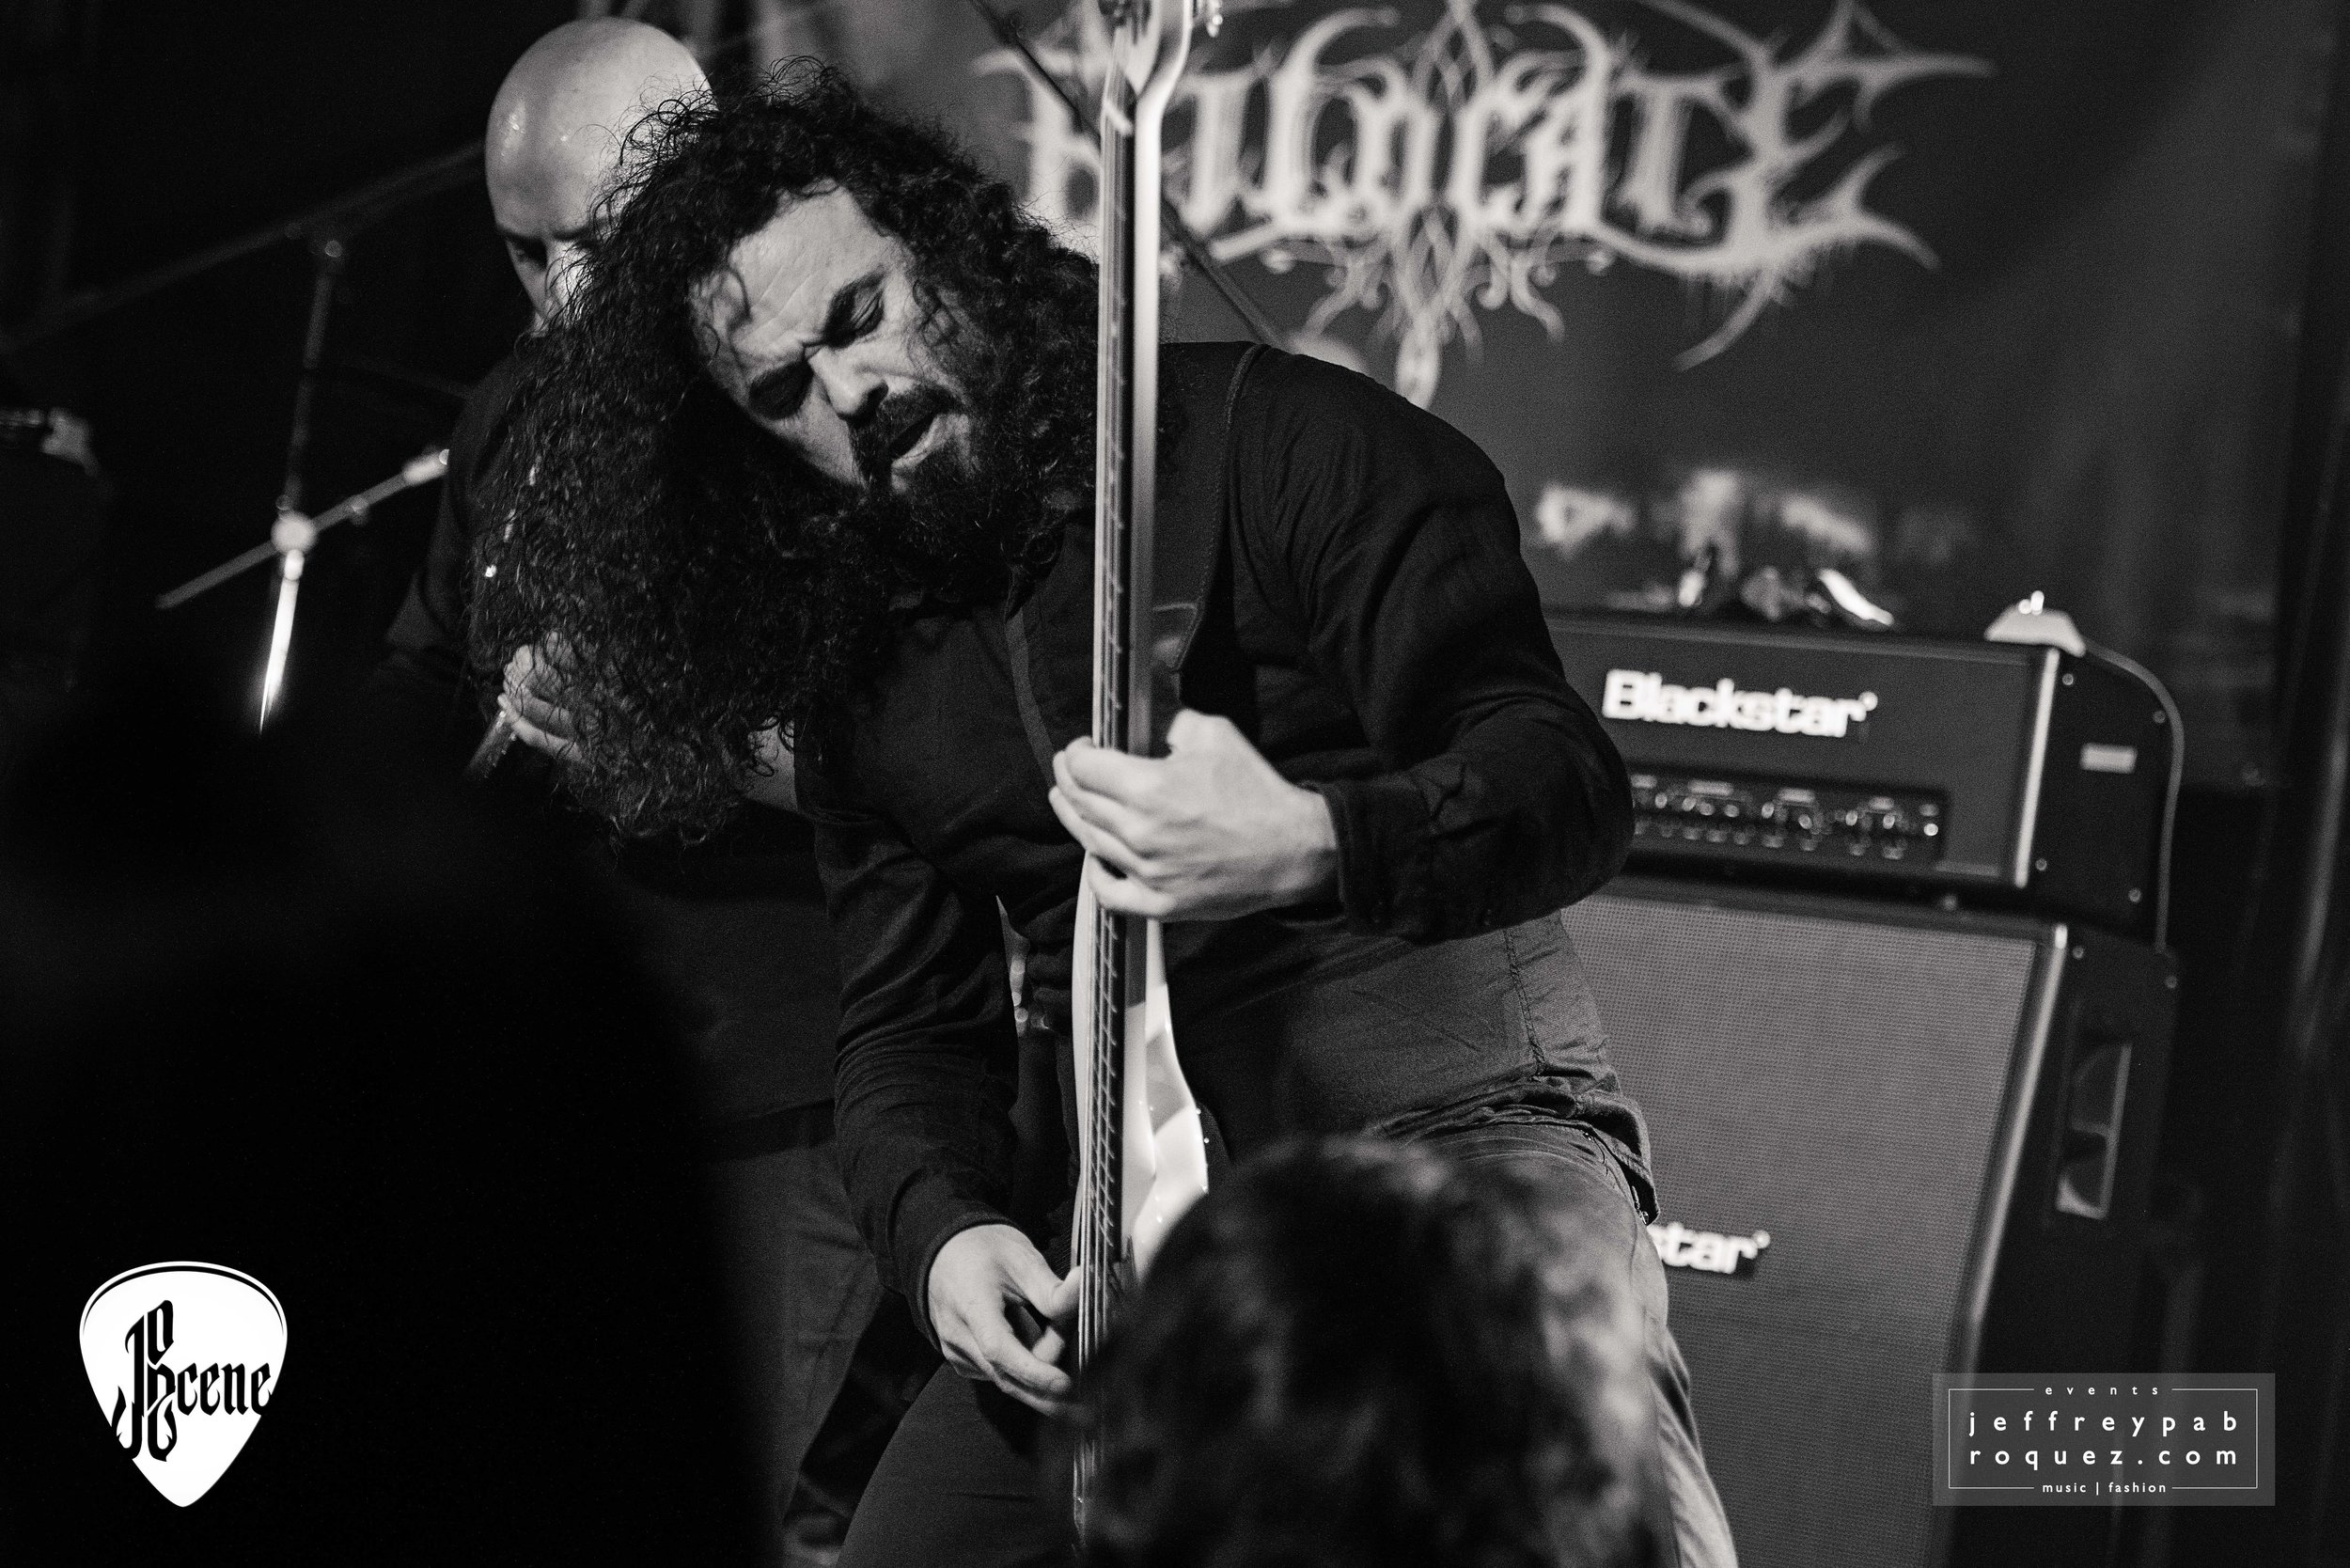 Katatonia_20170105_0243 copy.jpg